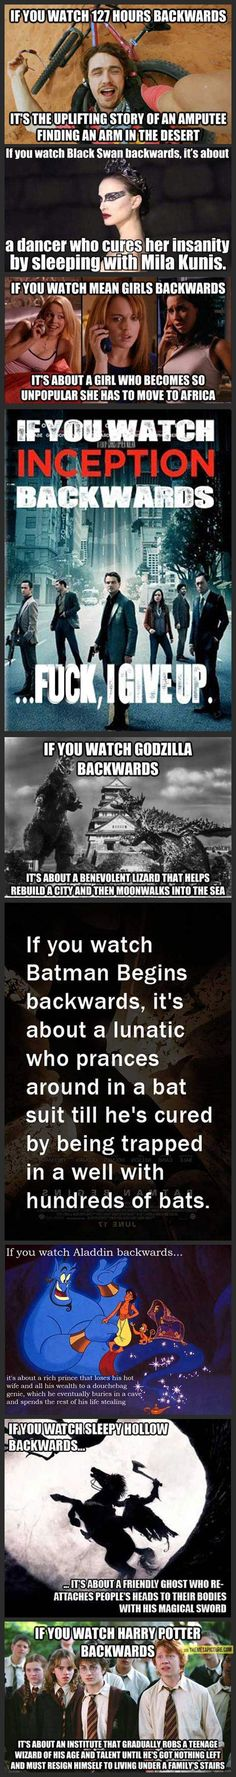 If you watch these movies backwards...